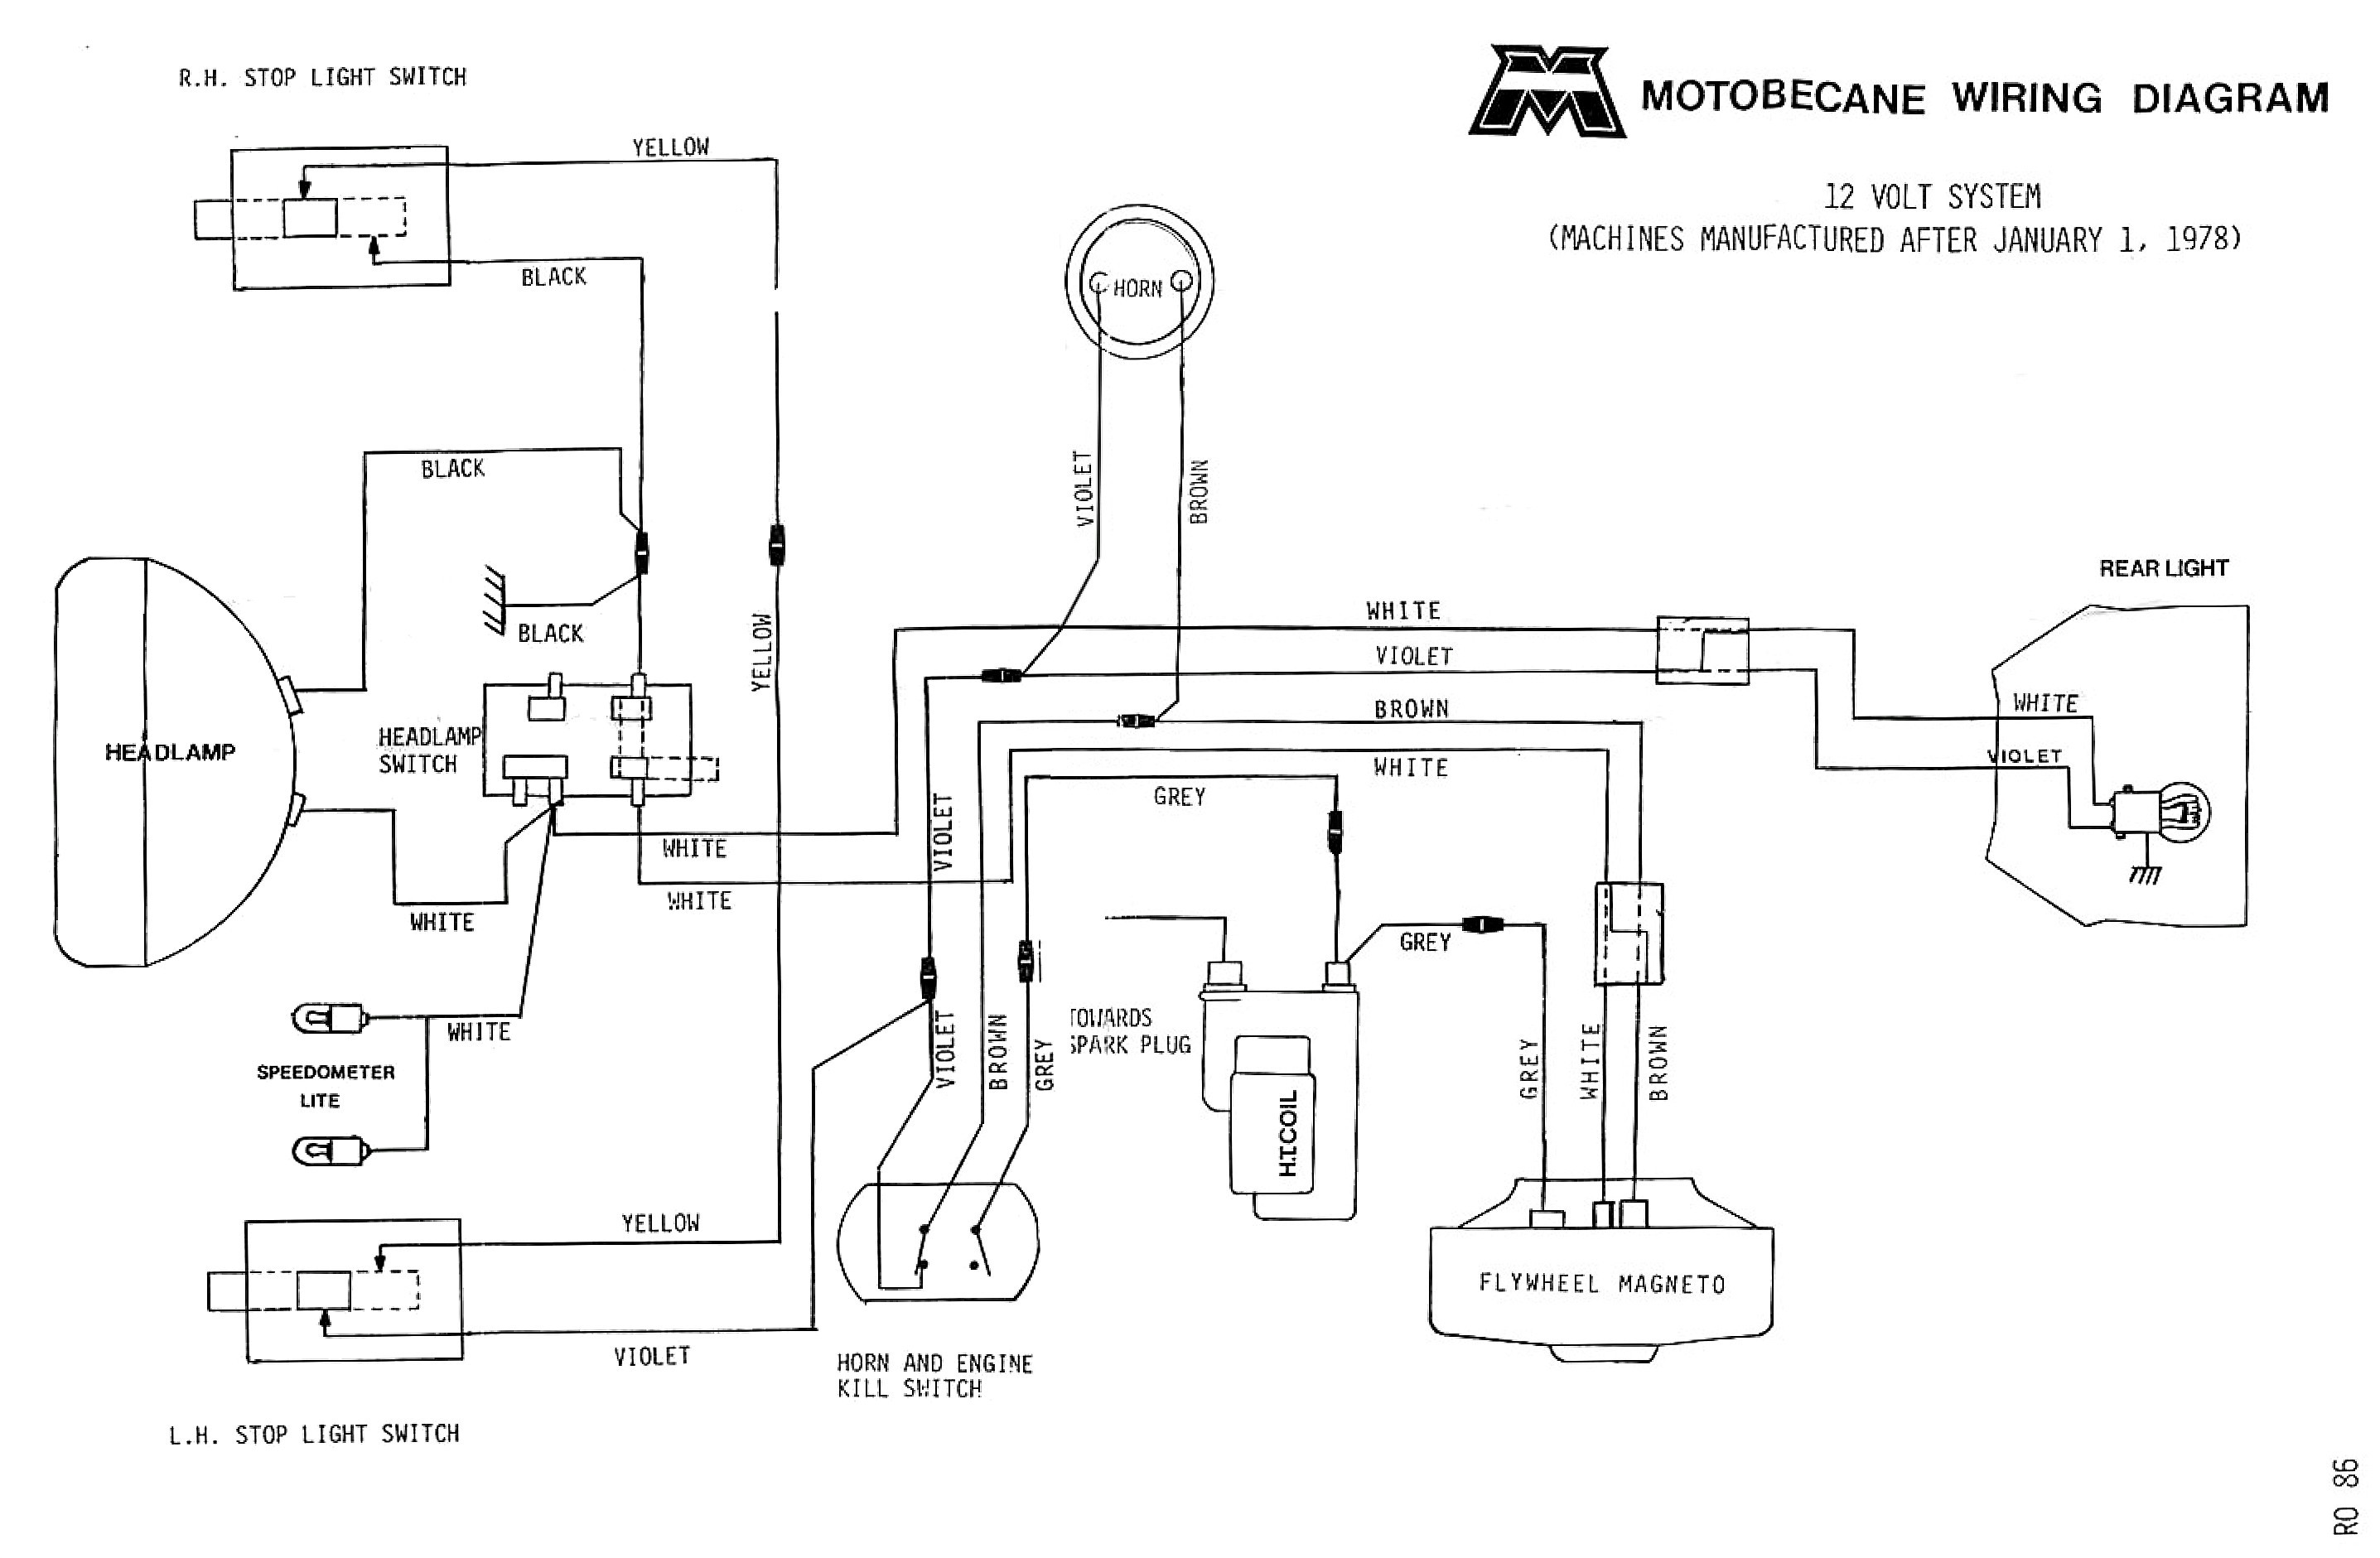 DIAGRAM] 5000 Ford Tractor Electrical Wiring Diagram FULL Version HD  Quality Wiring Diagram - SPRINGLOADEDSUSPENSION.VALENTINOBIMBI.ITvalentinobimbi.it